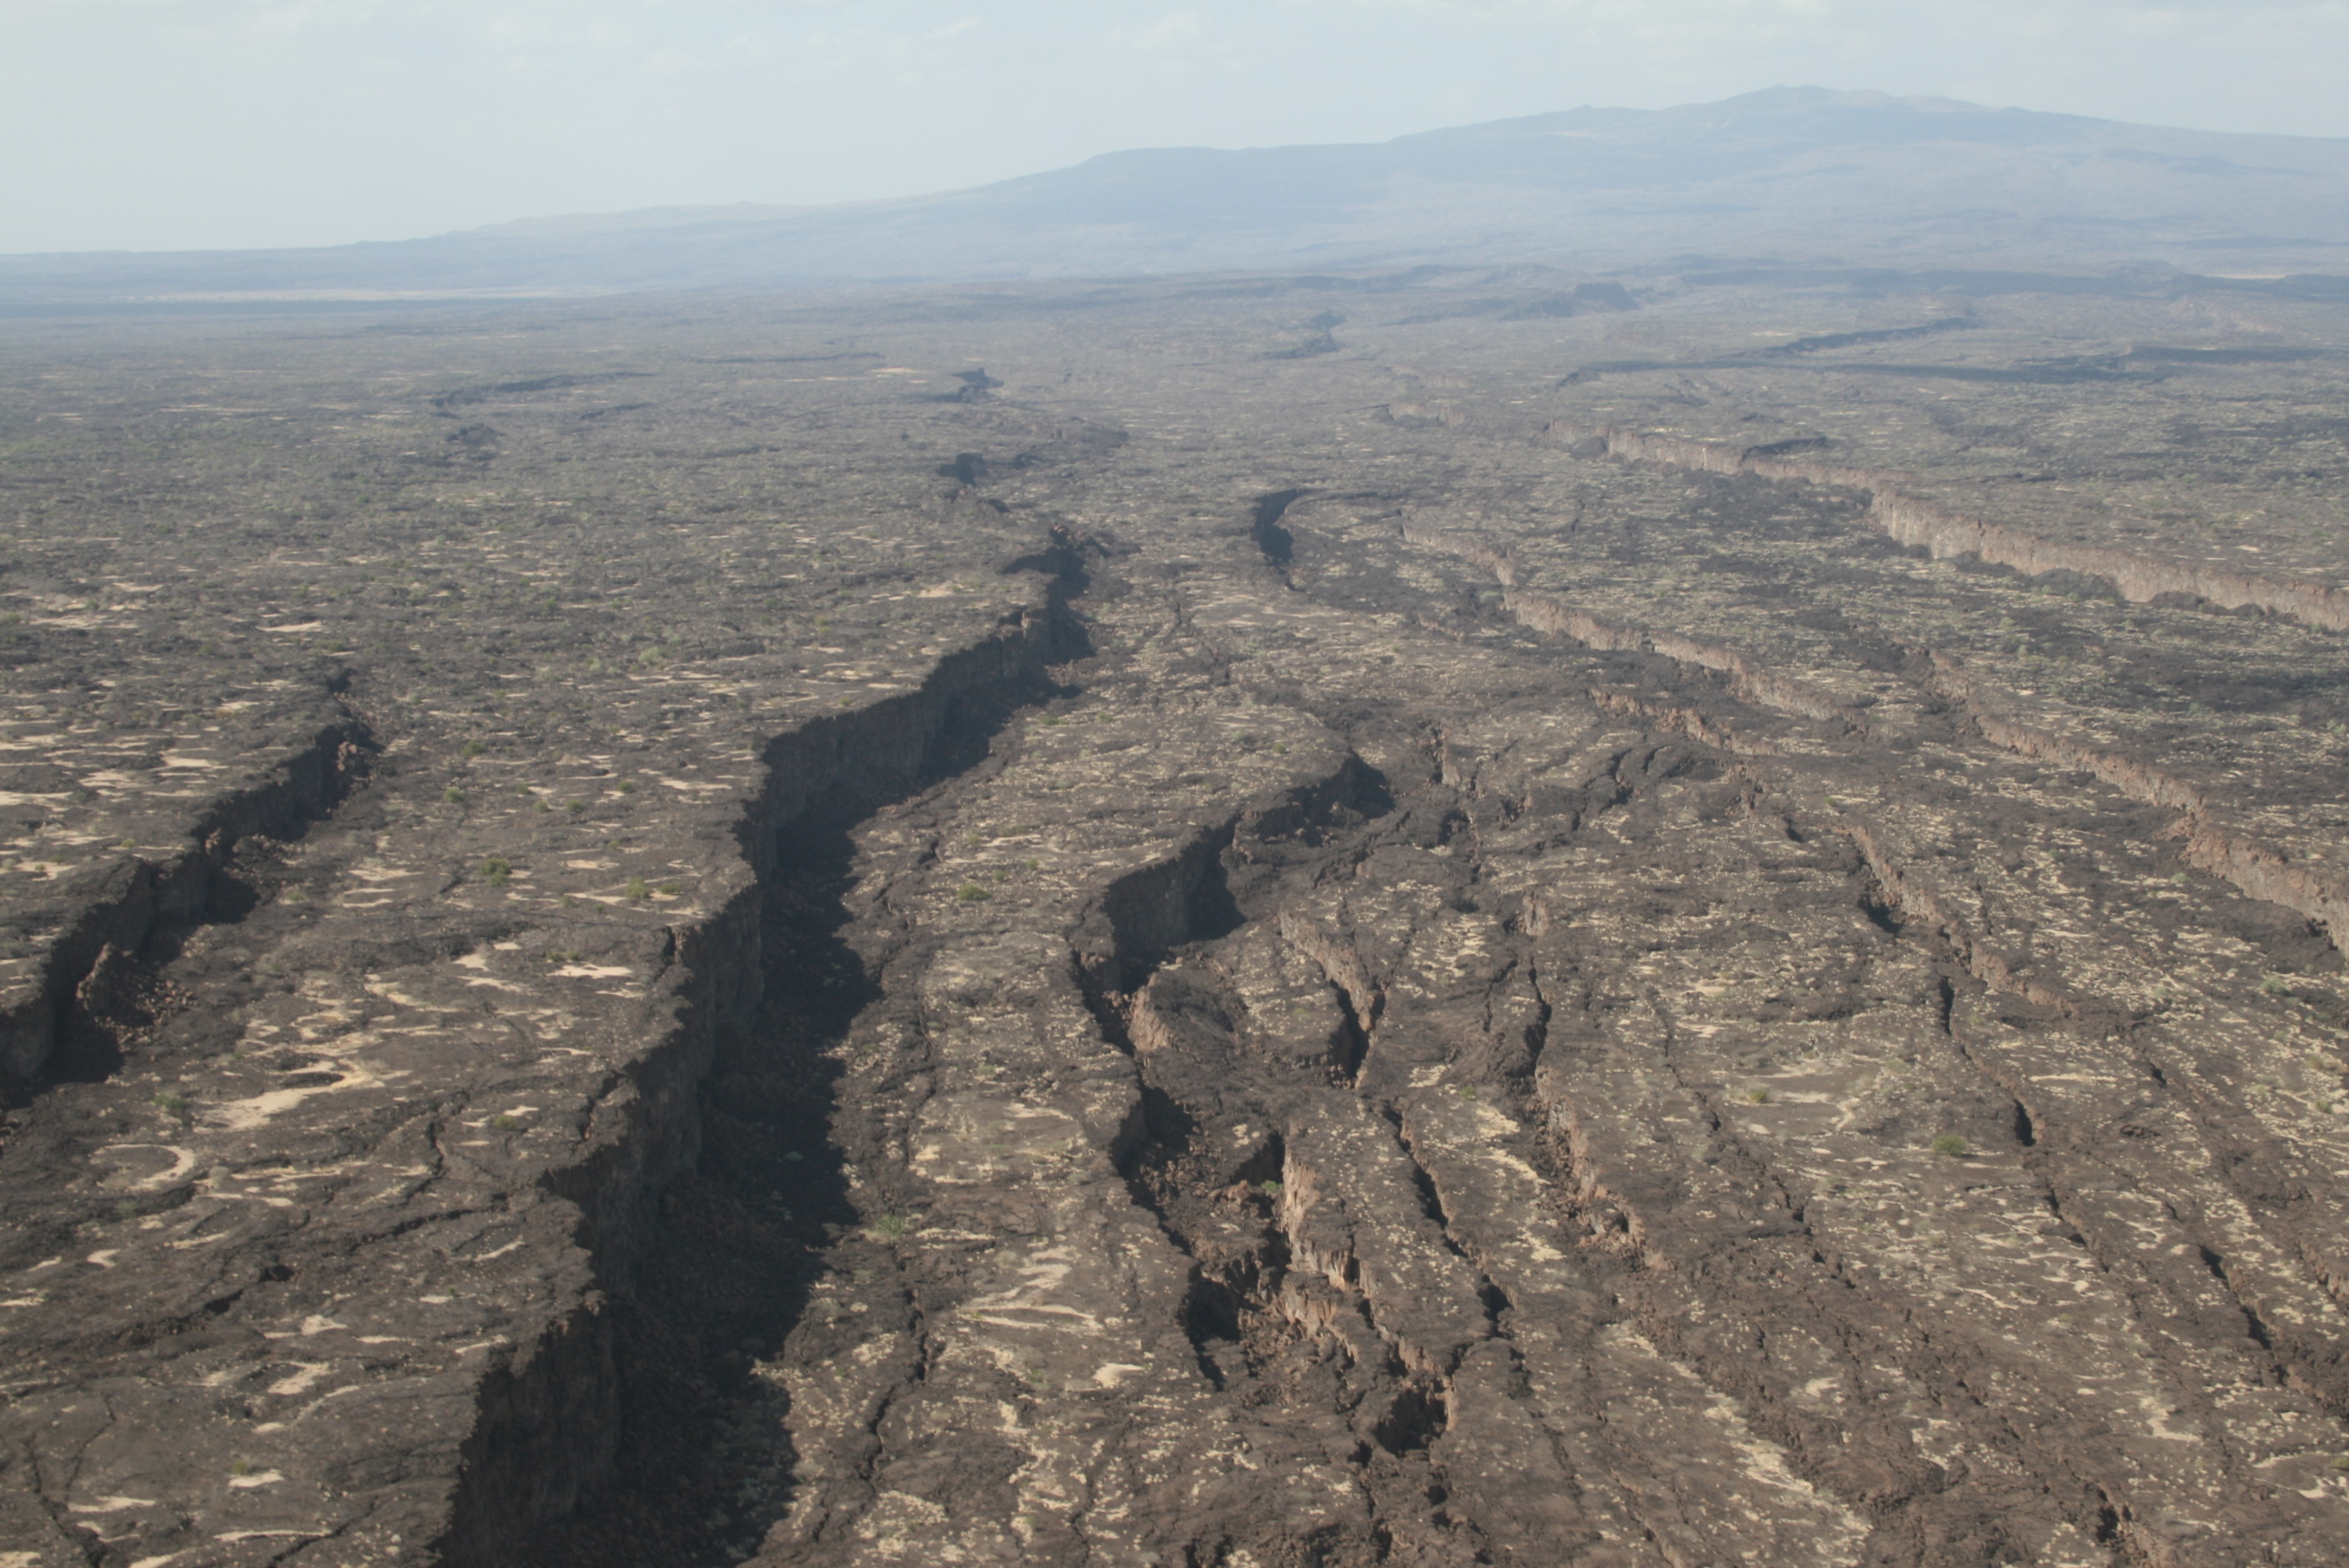 Looking North, Up The Dabbahu Rift, Afar.